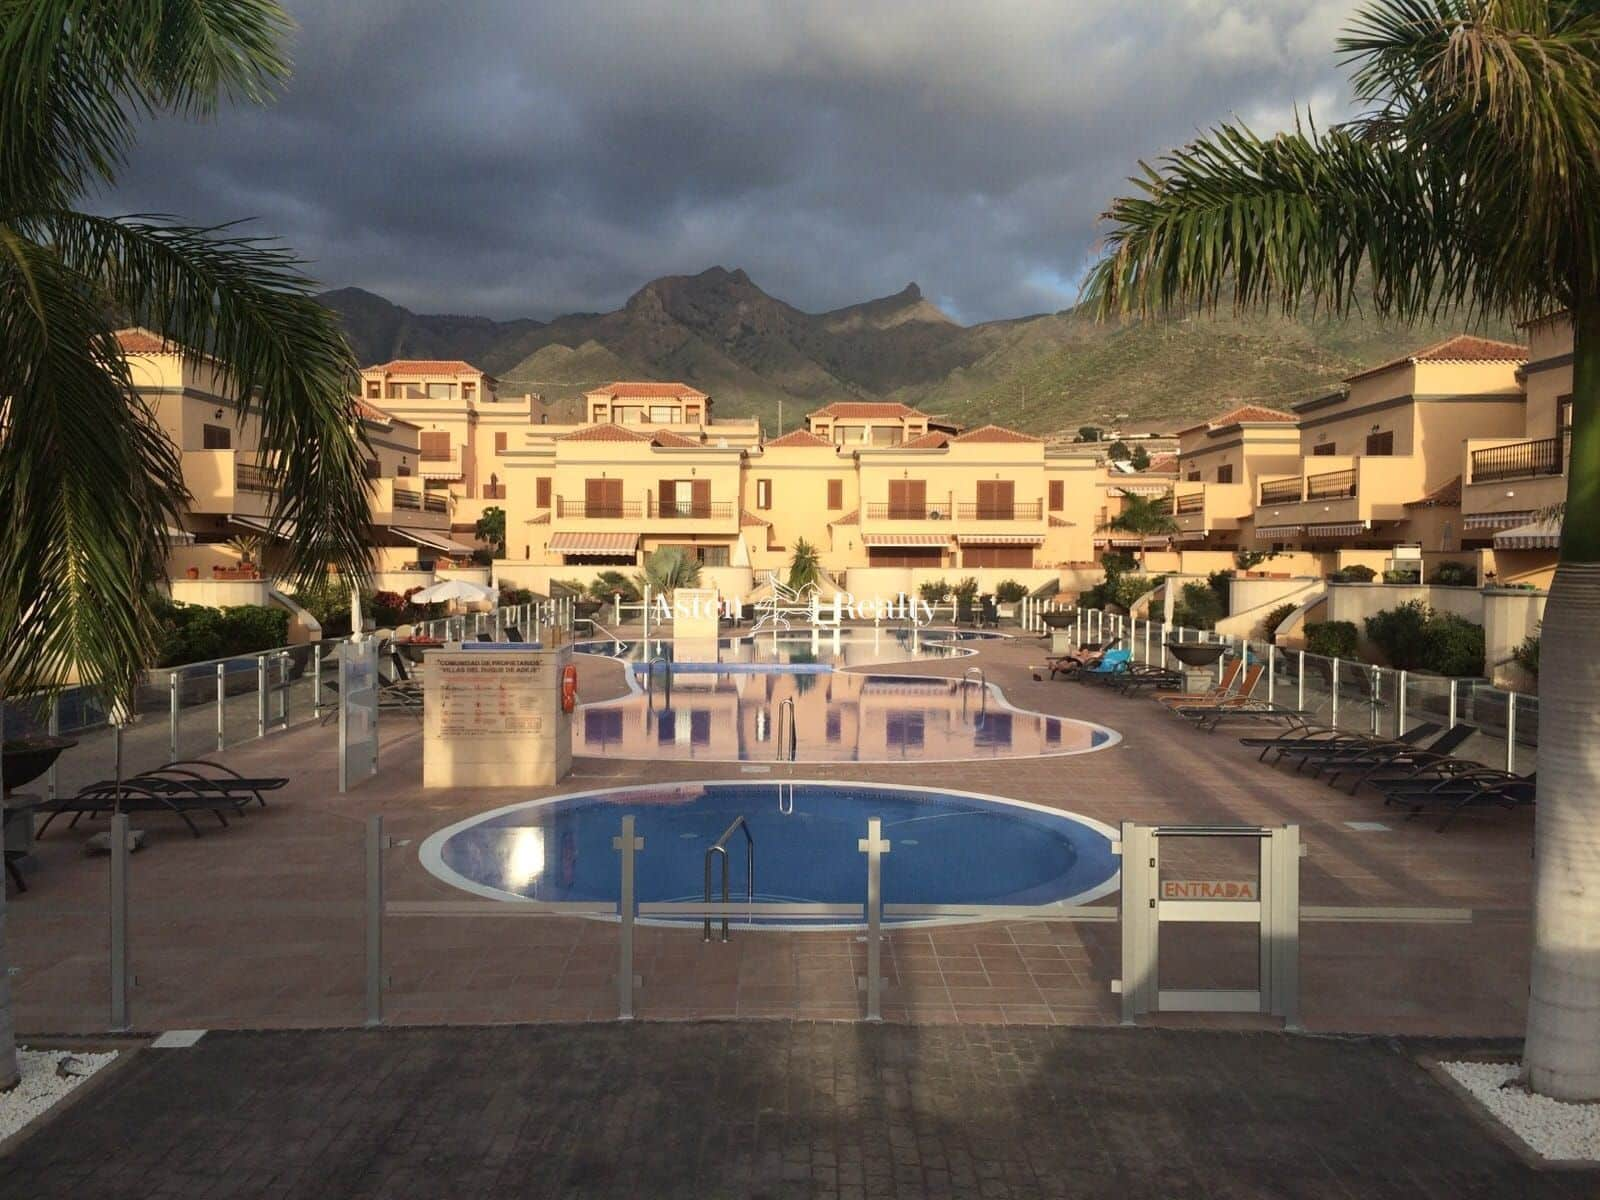 3 bedroom Townhouse for sale in Playa del Duque with pool garage - € 690,000 (Ref: 5803205)